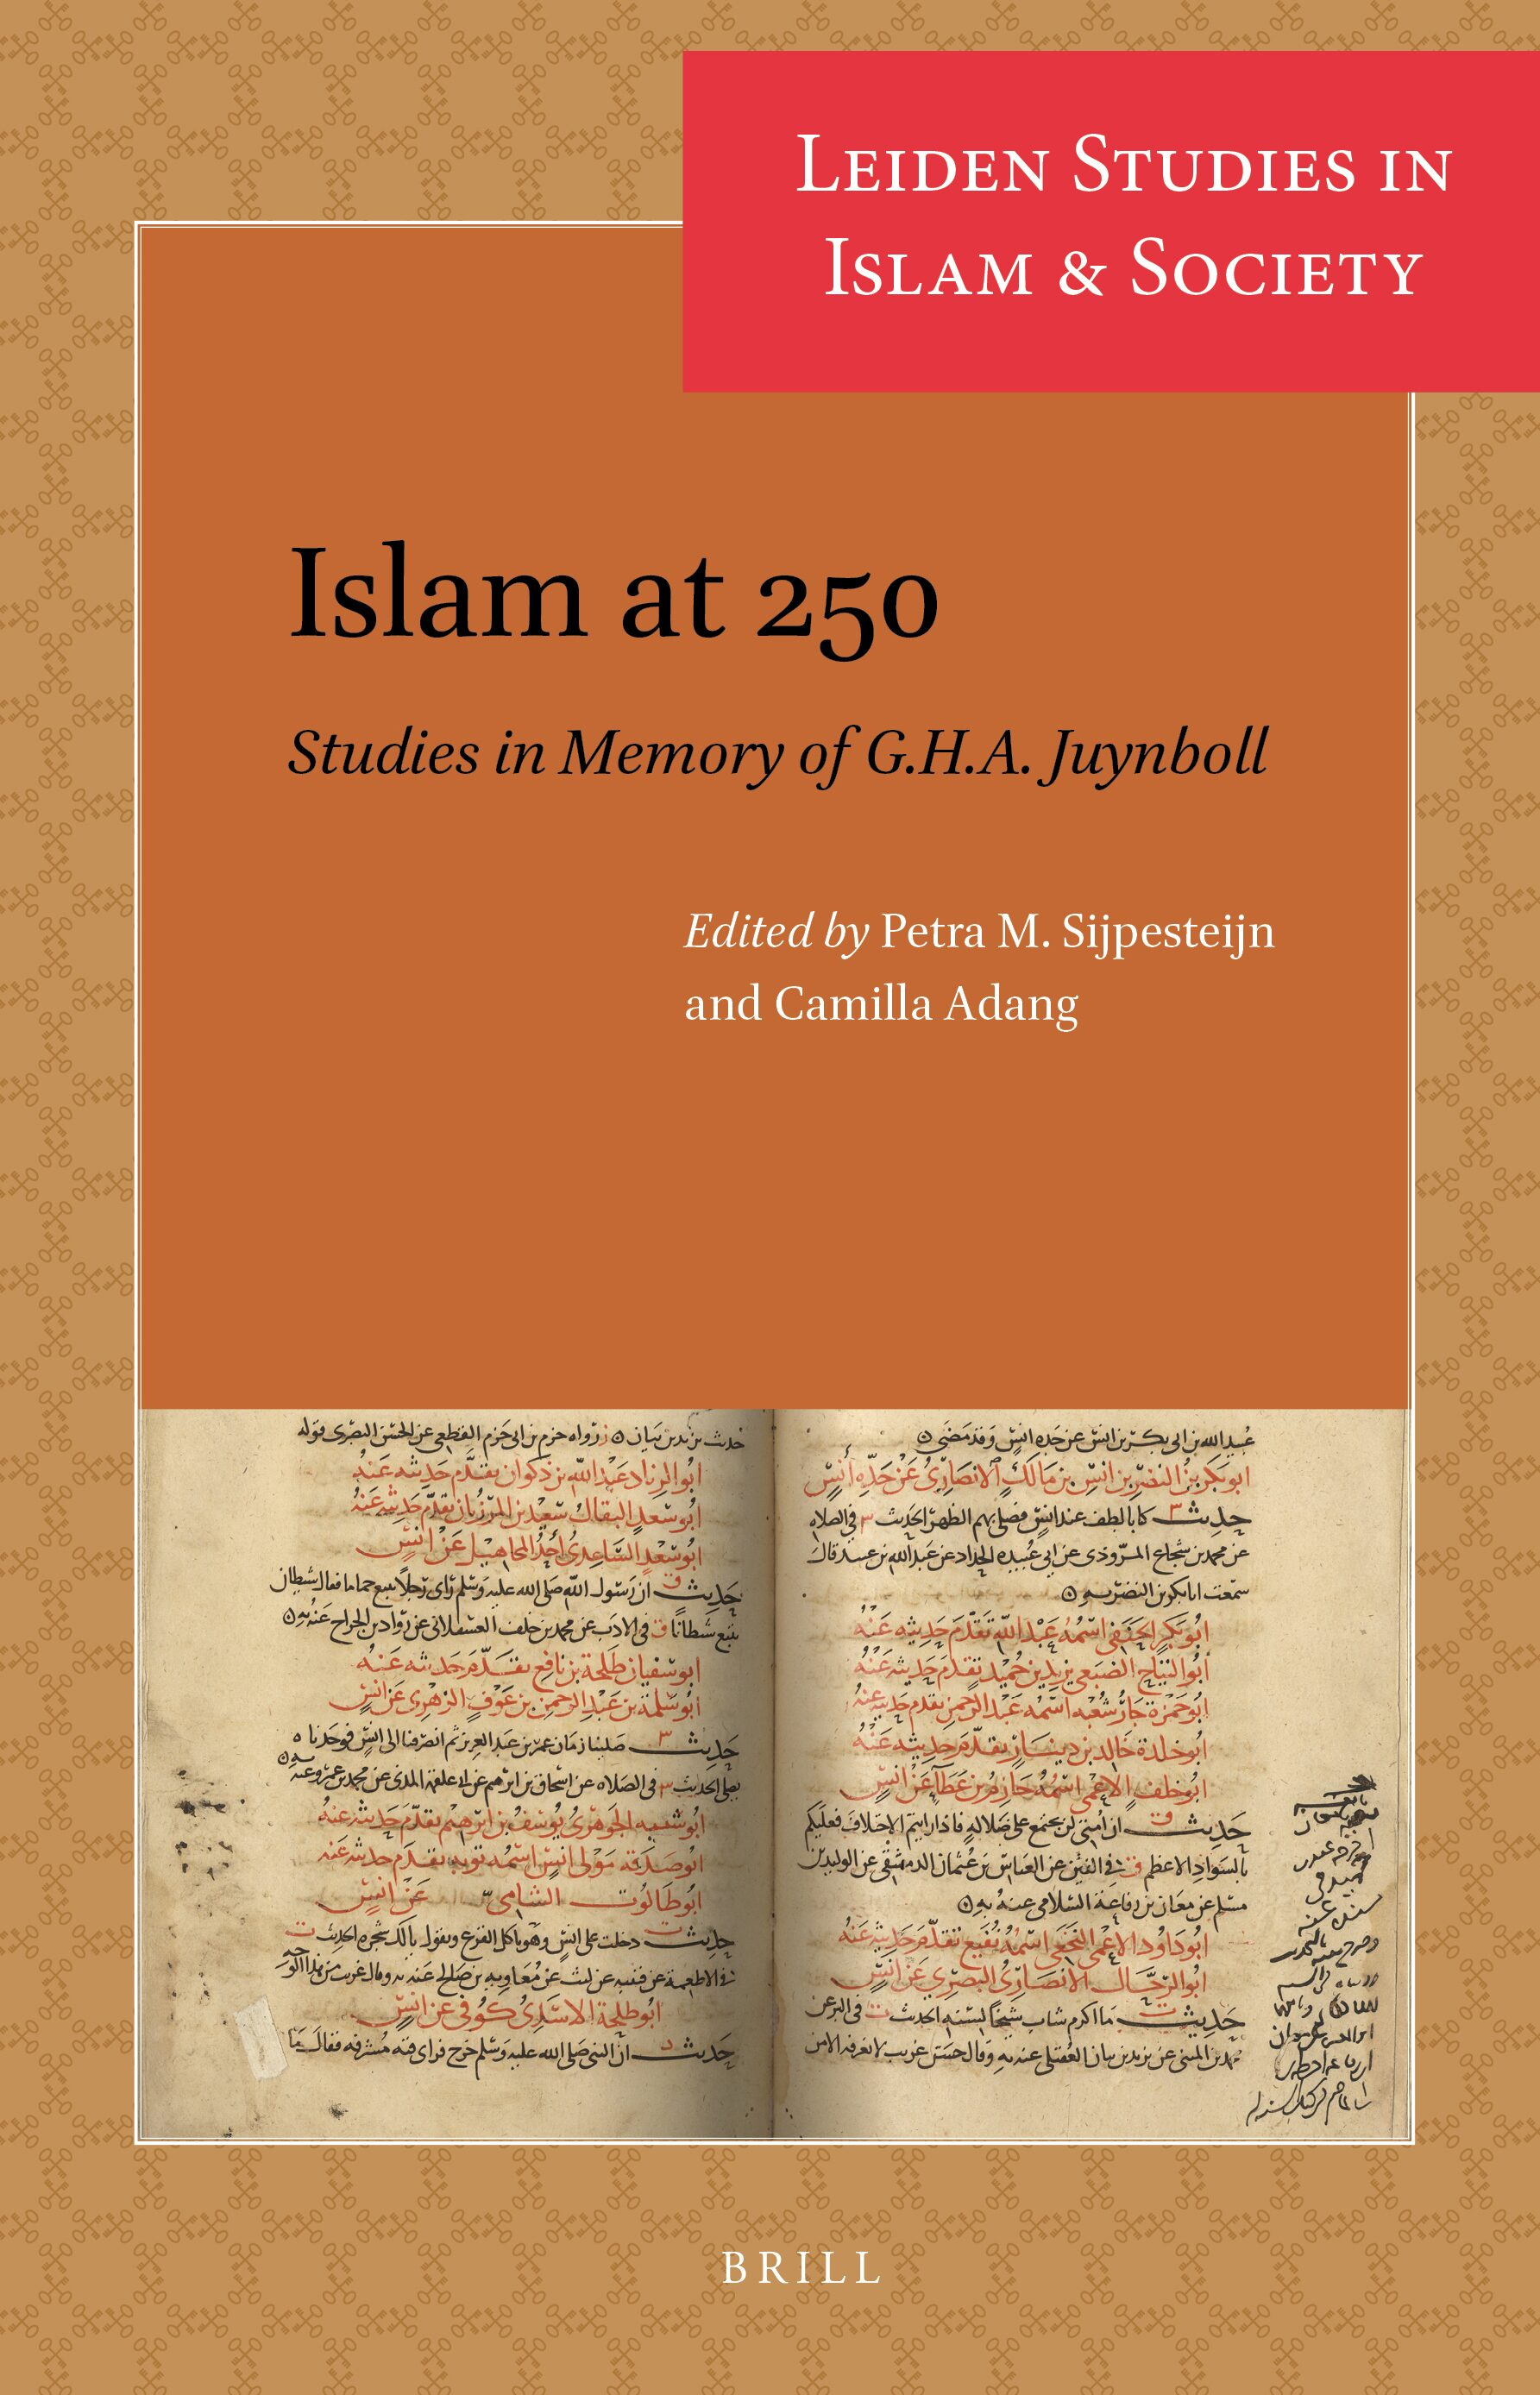 Chapter 11 Cry Me A Jahiliyya Muslim Reconstructions Of Pre Islamic Arabian Culture A Case Study In Islam At 250